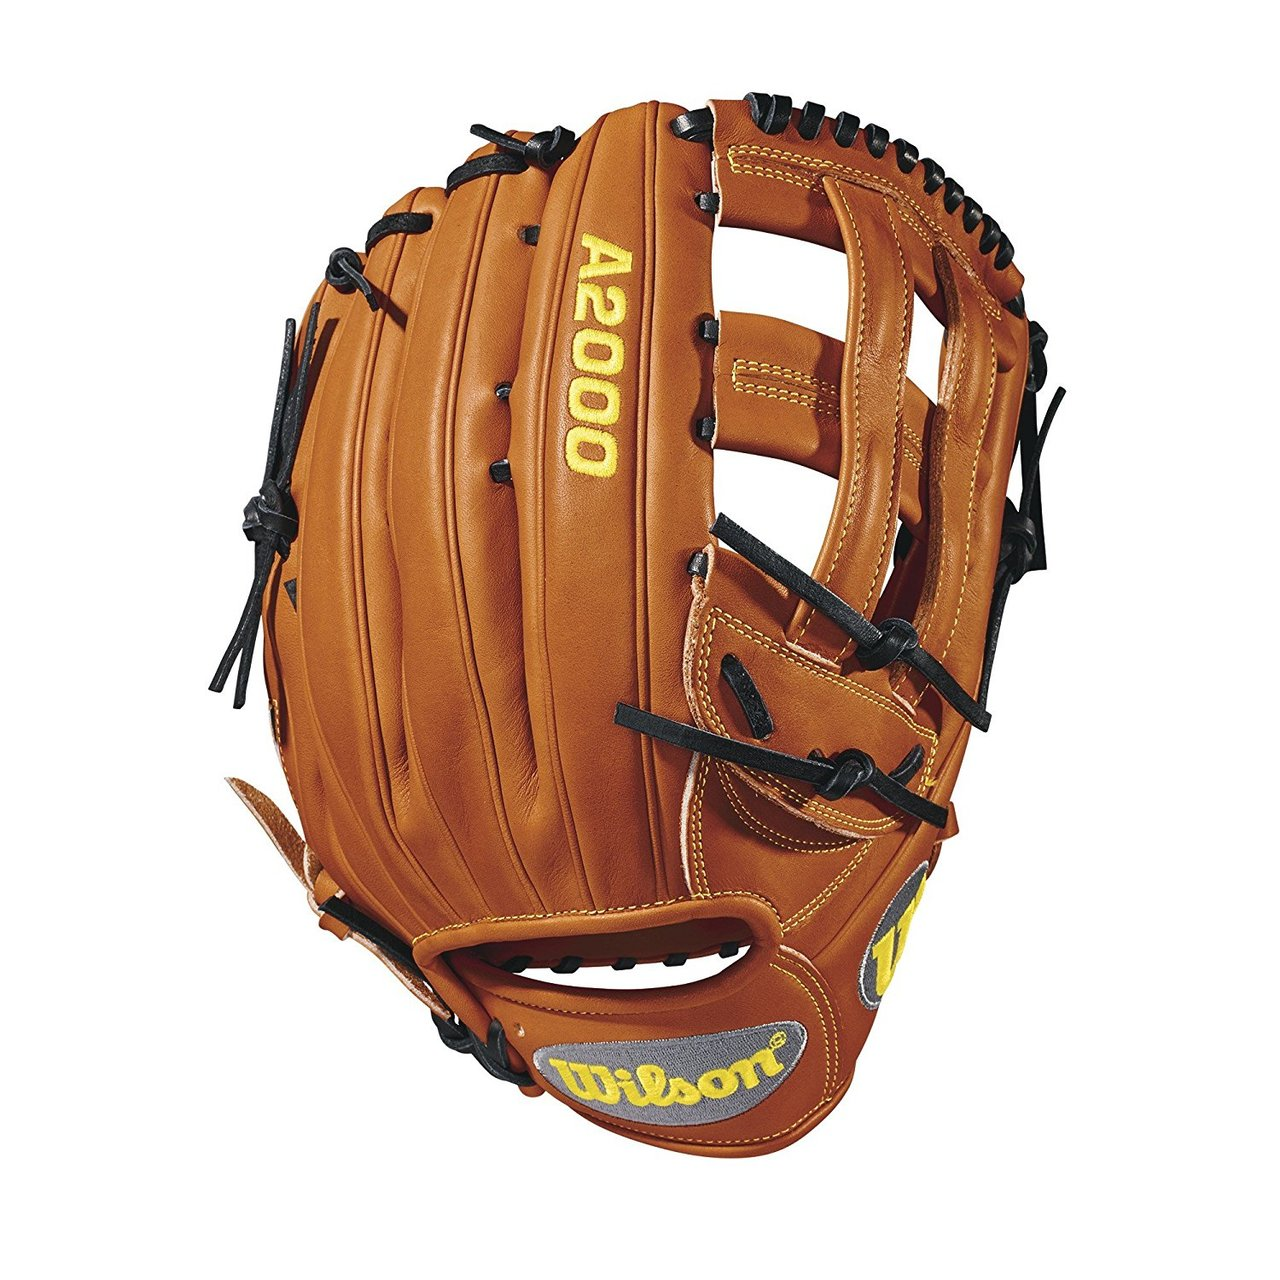 wilson-2018-a2000-1799-outfield-baseball-glove-12-75-right-hand-throw WTA20RB181799-RightHandThrow Wilson 887768615031 <div>The classic A2000® 1799 pattern is made with Orange Tan Pro